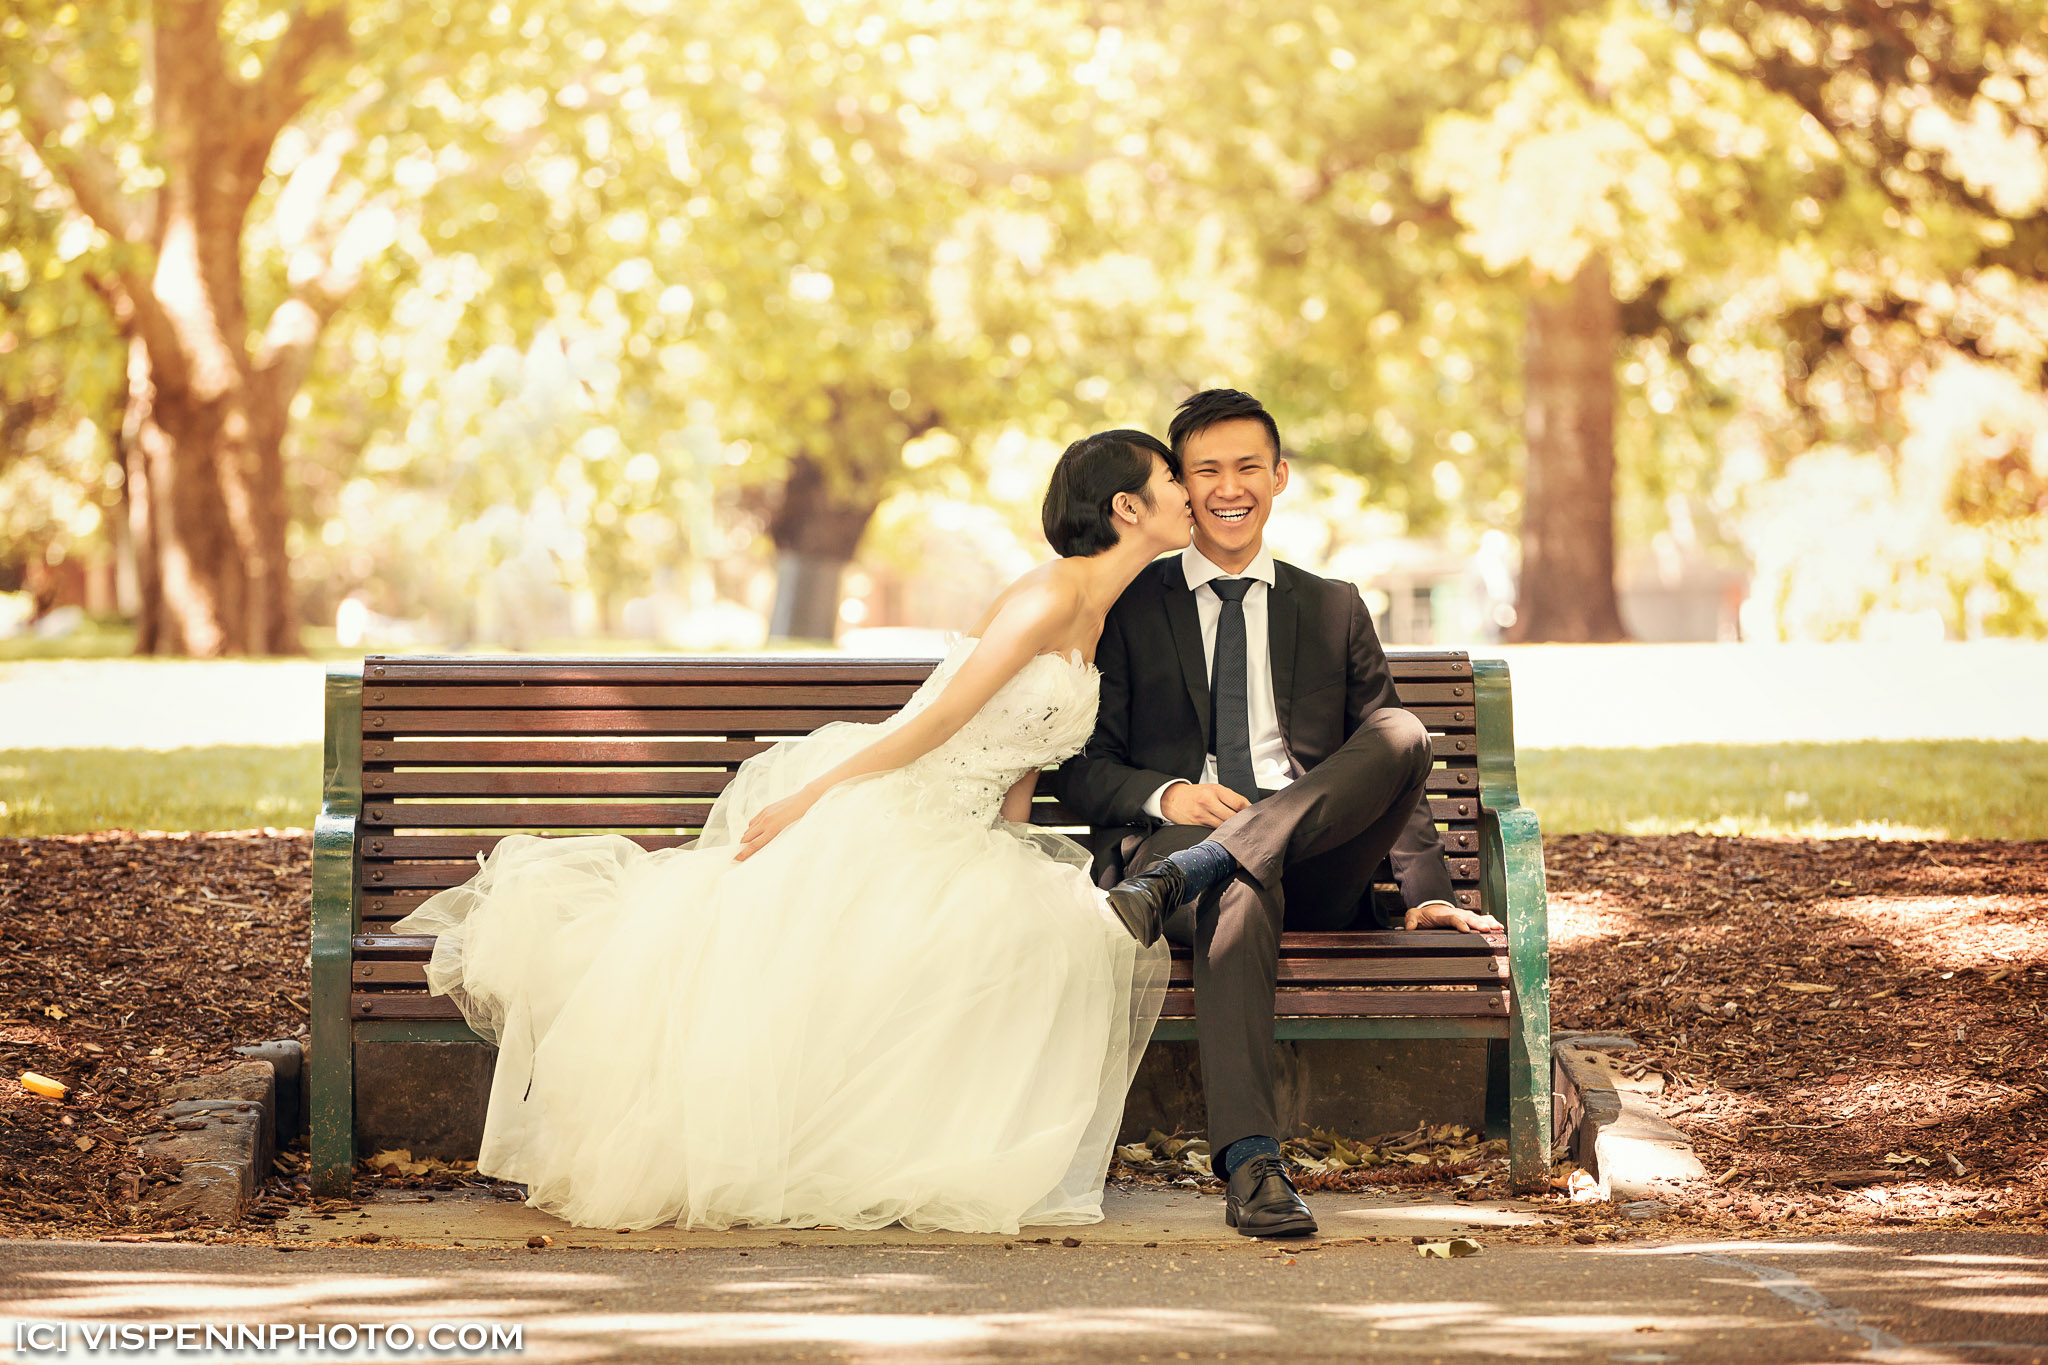 PRE WEDDING Photography Melbourne Ivy PreWedding 1724